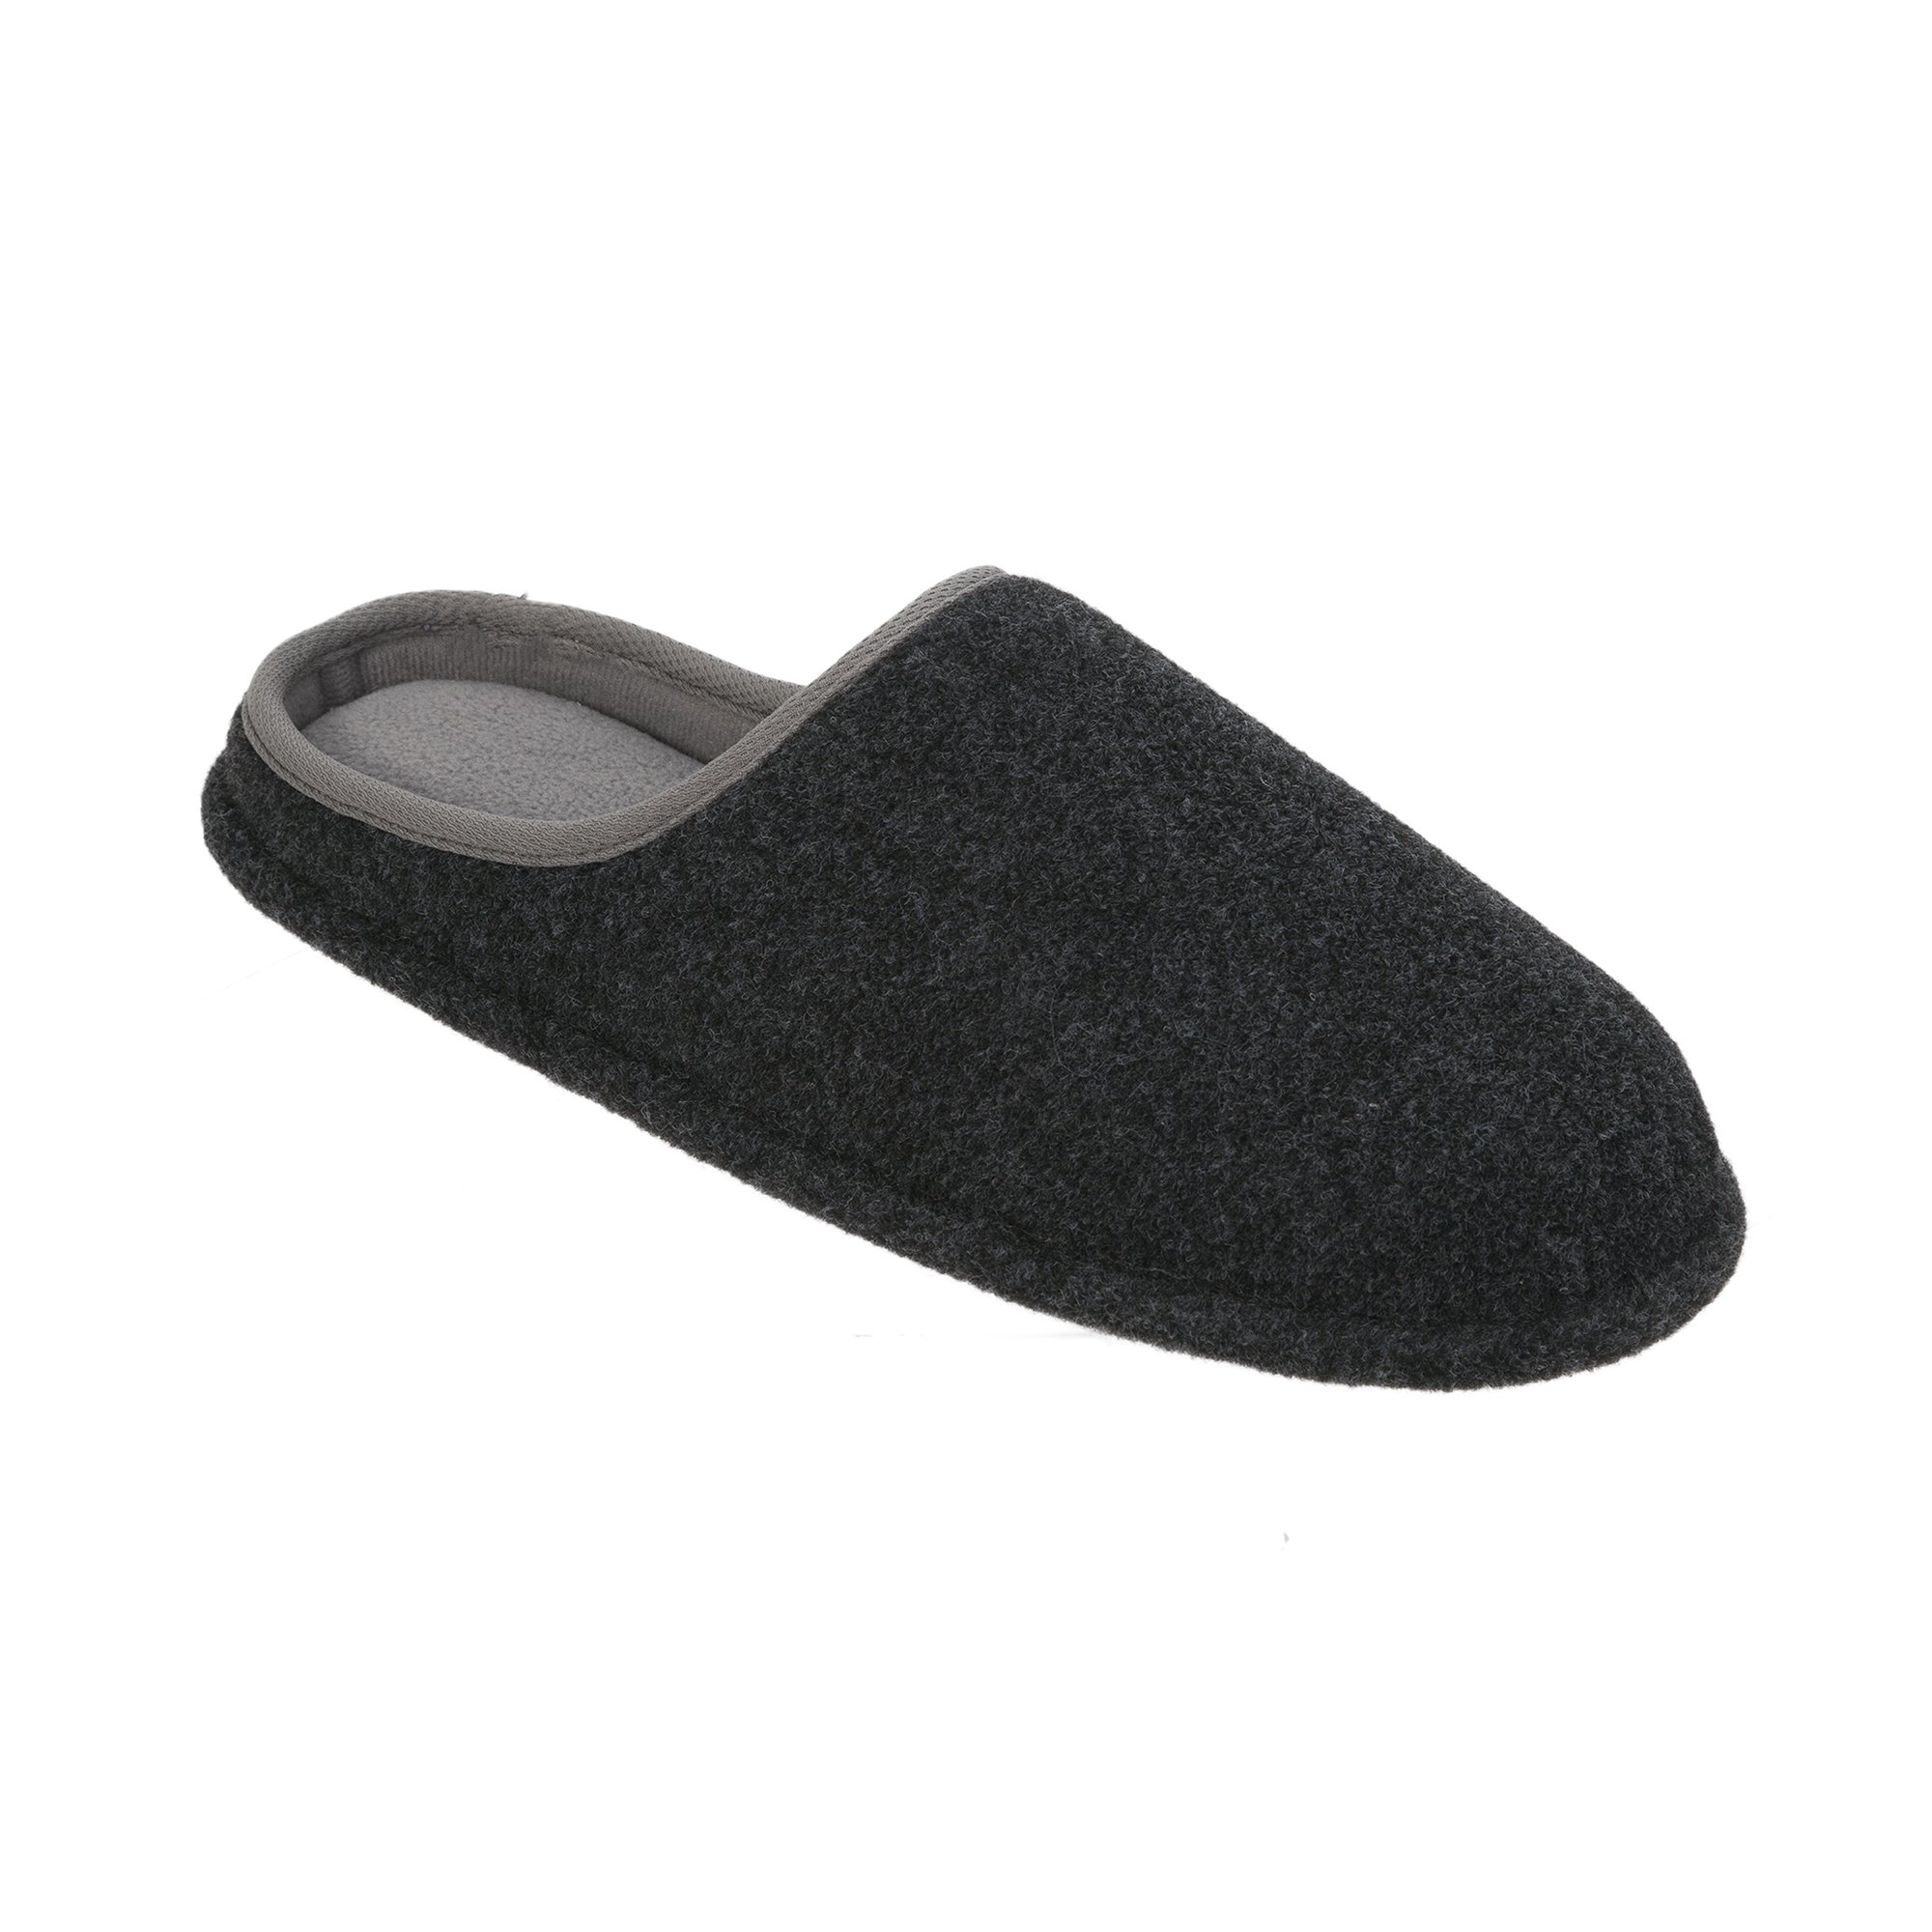 Dearfoams Men's Memory Foam Felt Clog Slippers (Large 11-12, Black)